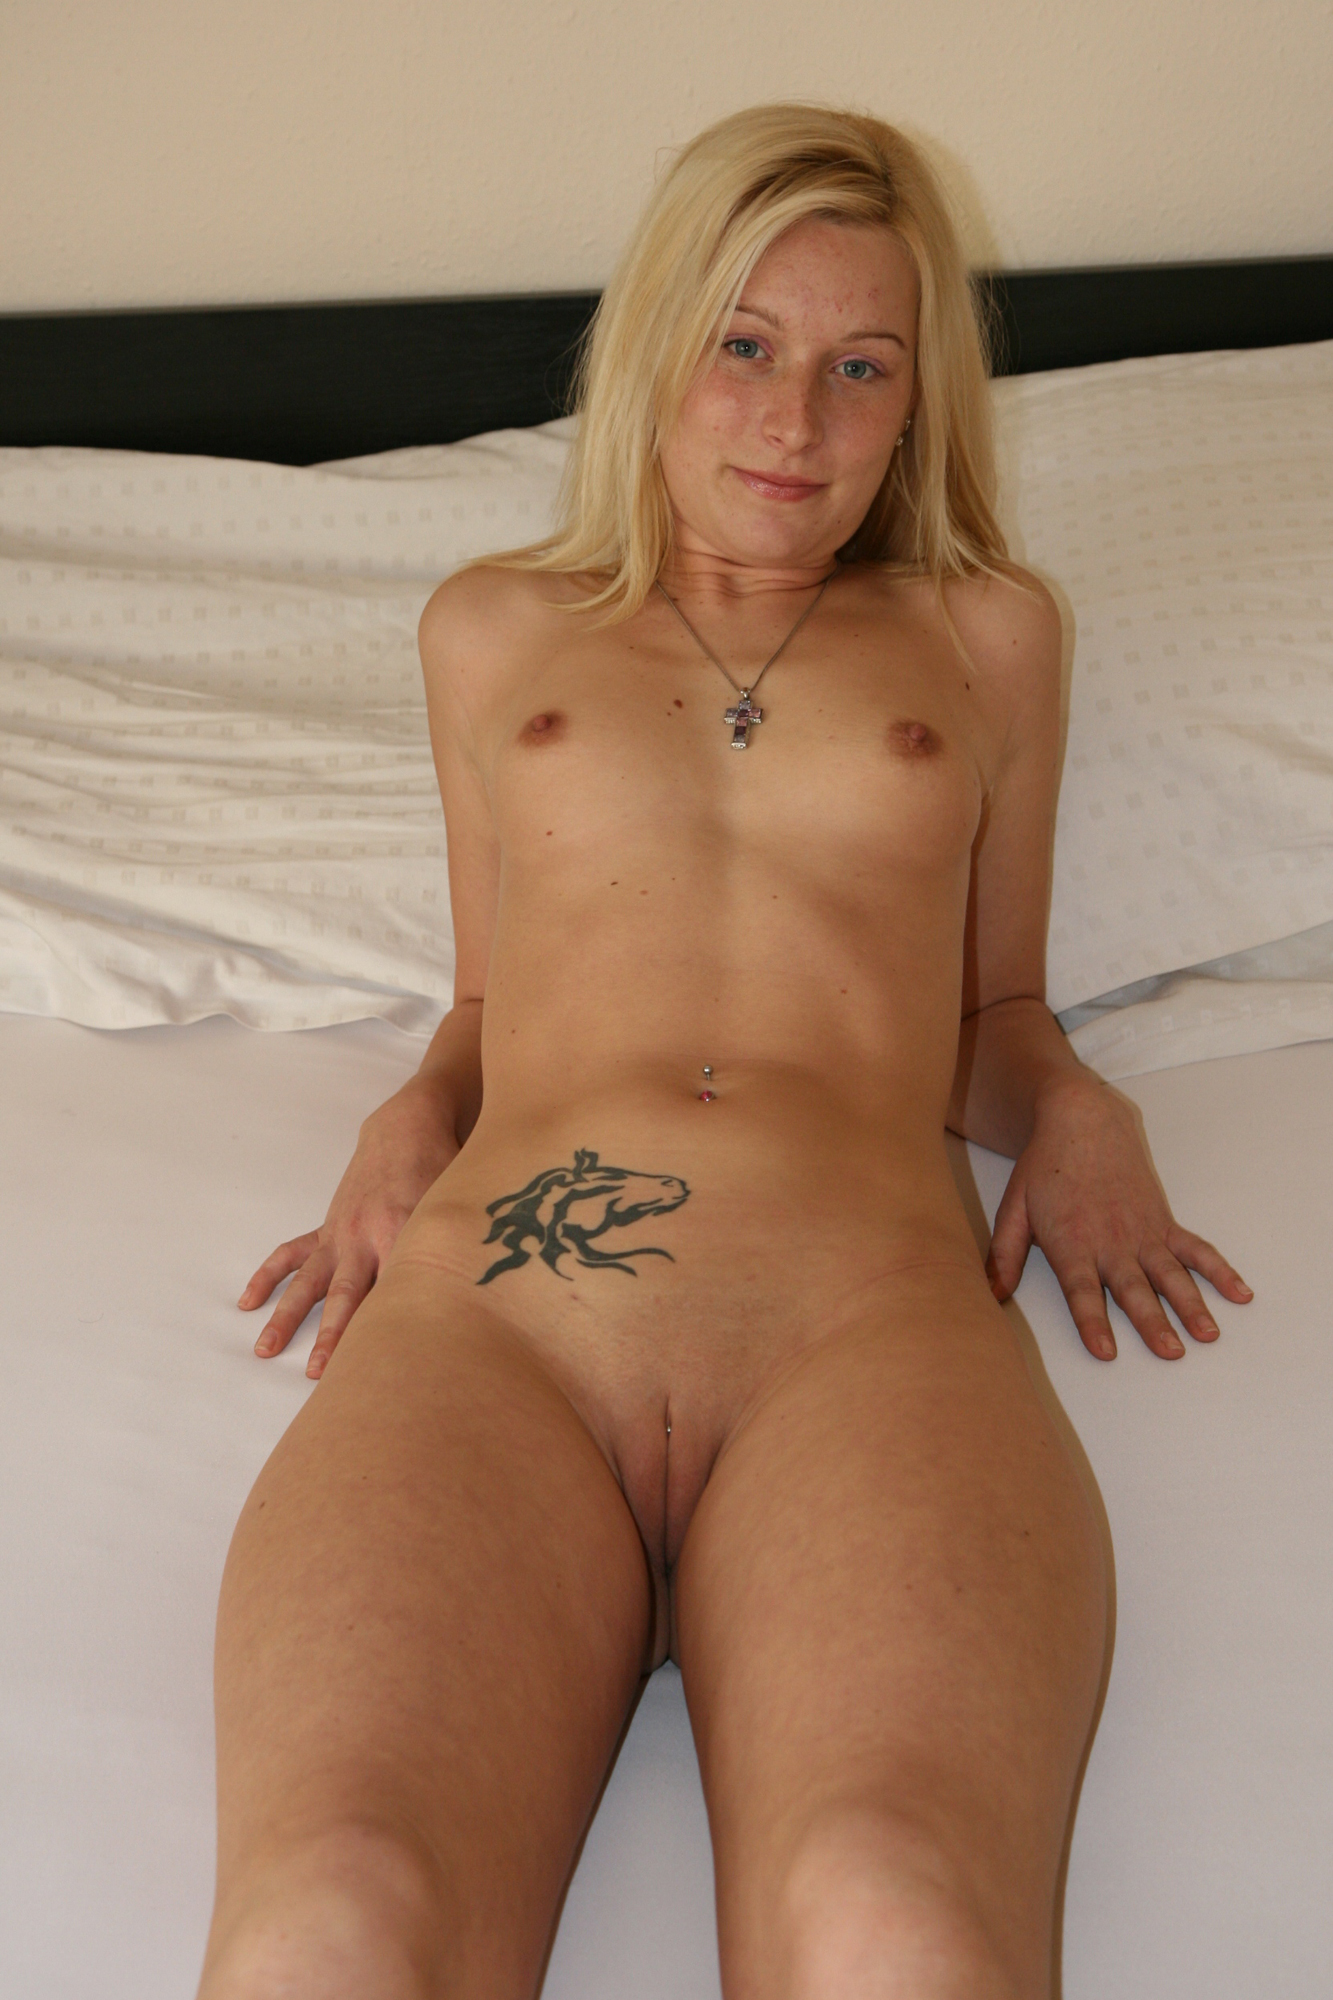 german Amateur nude blonde girls